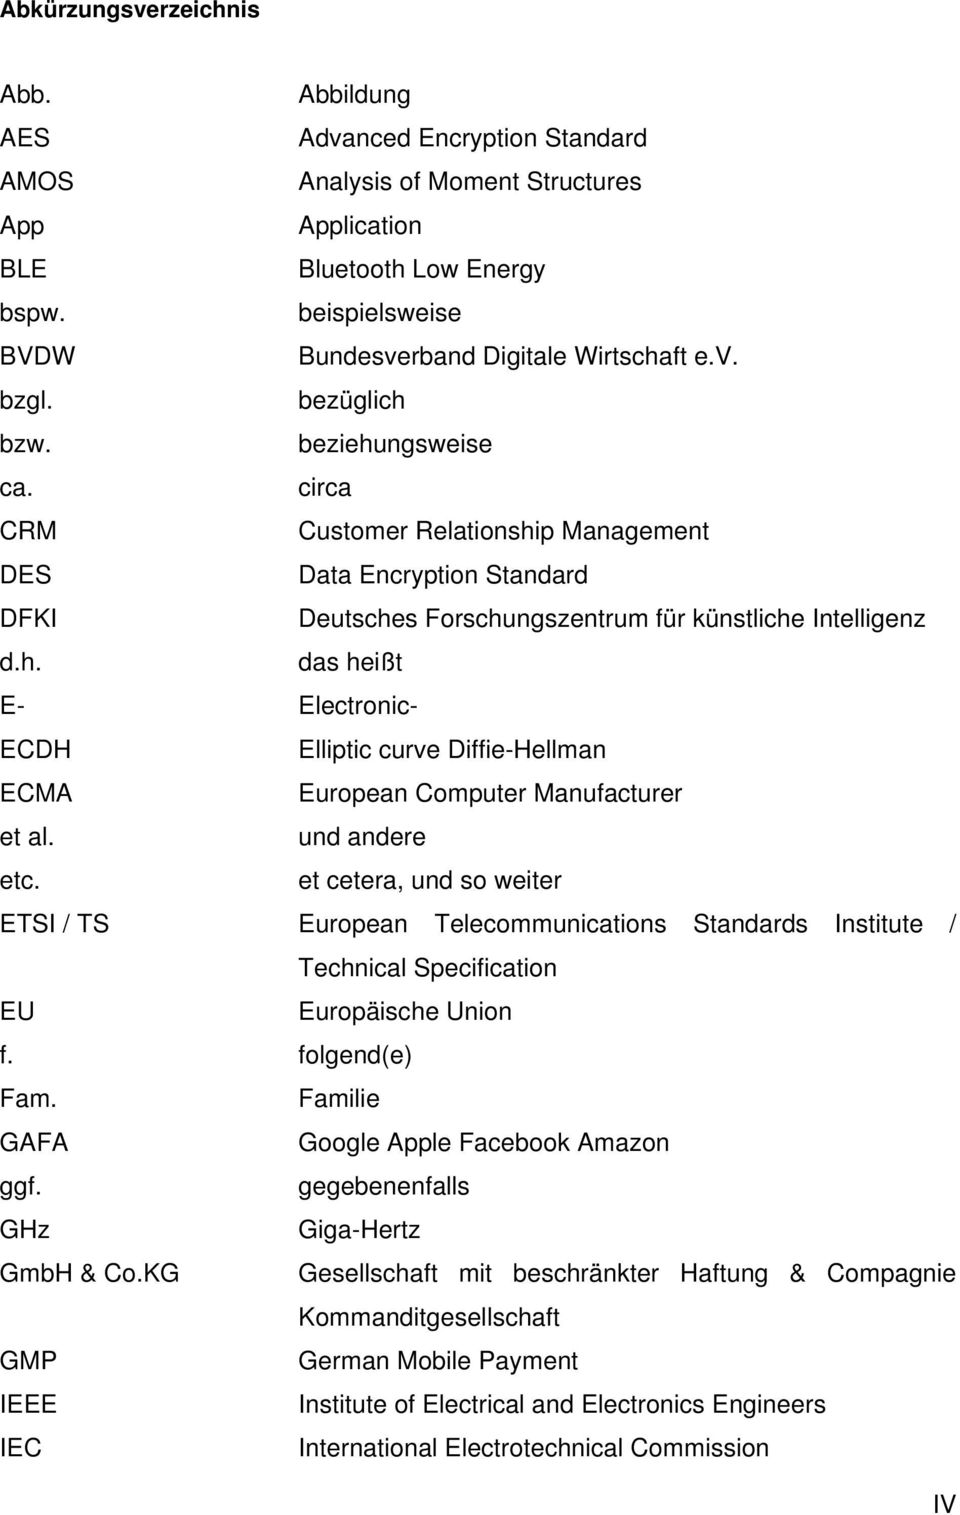 circa CRM Customer Relationship Management DES Data Encryption Standard DFKI Deutsches Forschungszentrum für künstliche Intelligenz d.h. das heißt E- Electronic- ECDH Elliptic curve Diffie-Hellman ECMA European Computer Manufacturer et al.